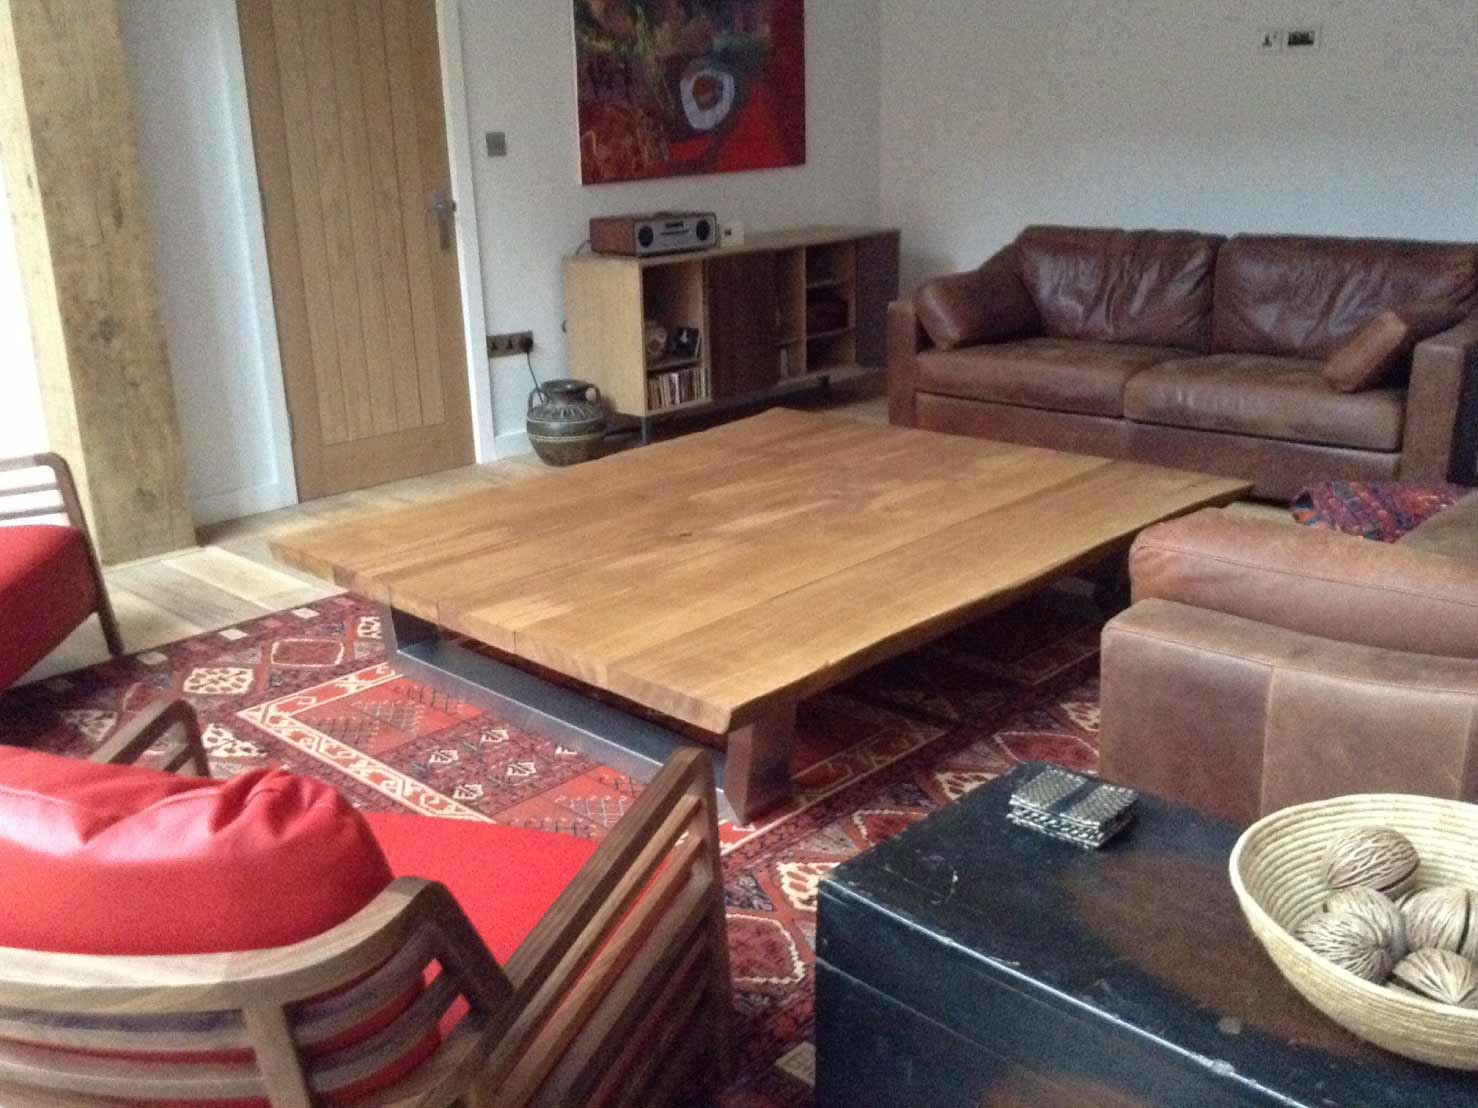 large-oak-coffee-table-from-abacus-tables-komodo-1.8m-live-edge-oak-top-project-199